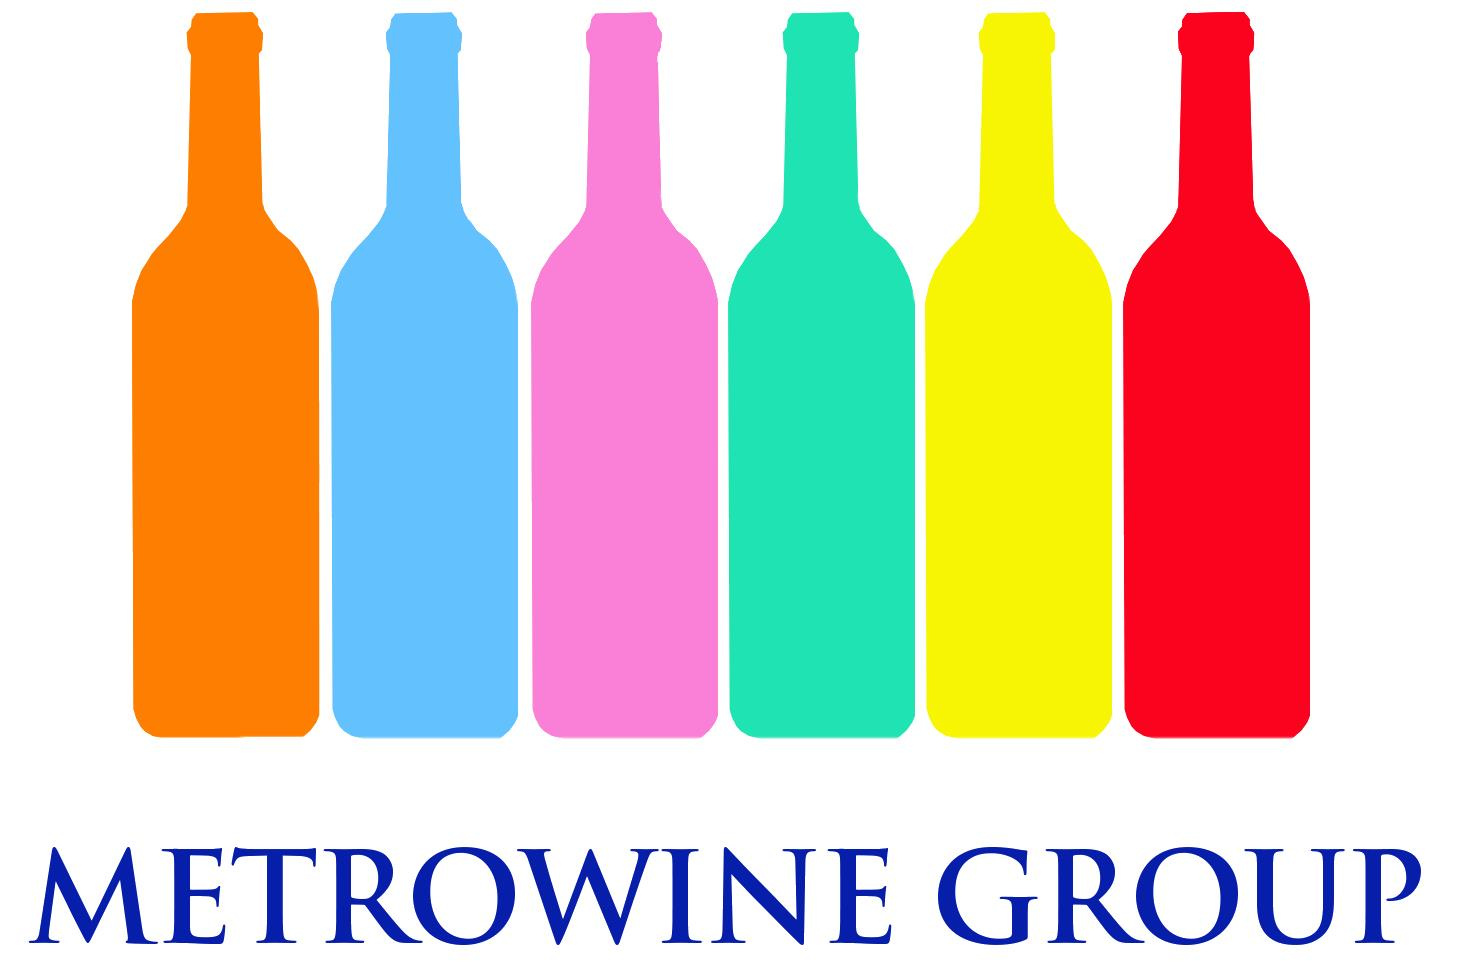 Metrowine Group – New York